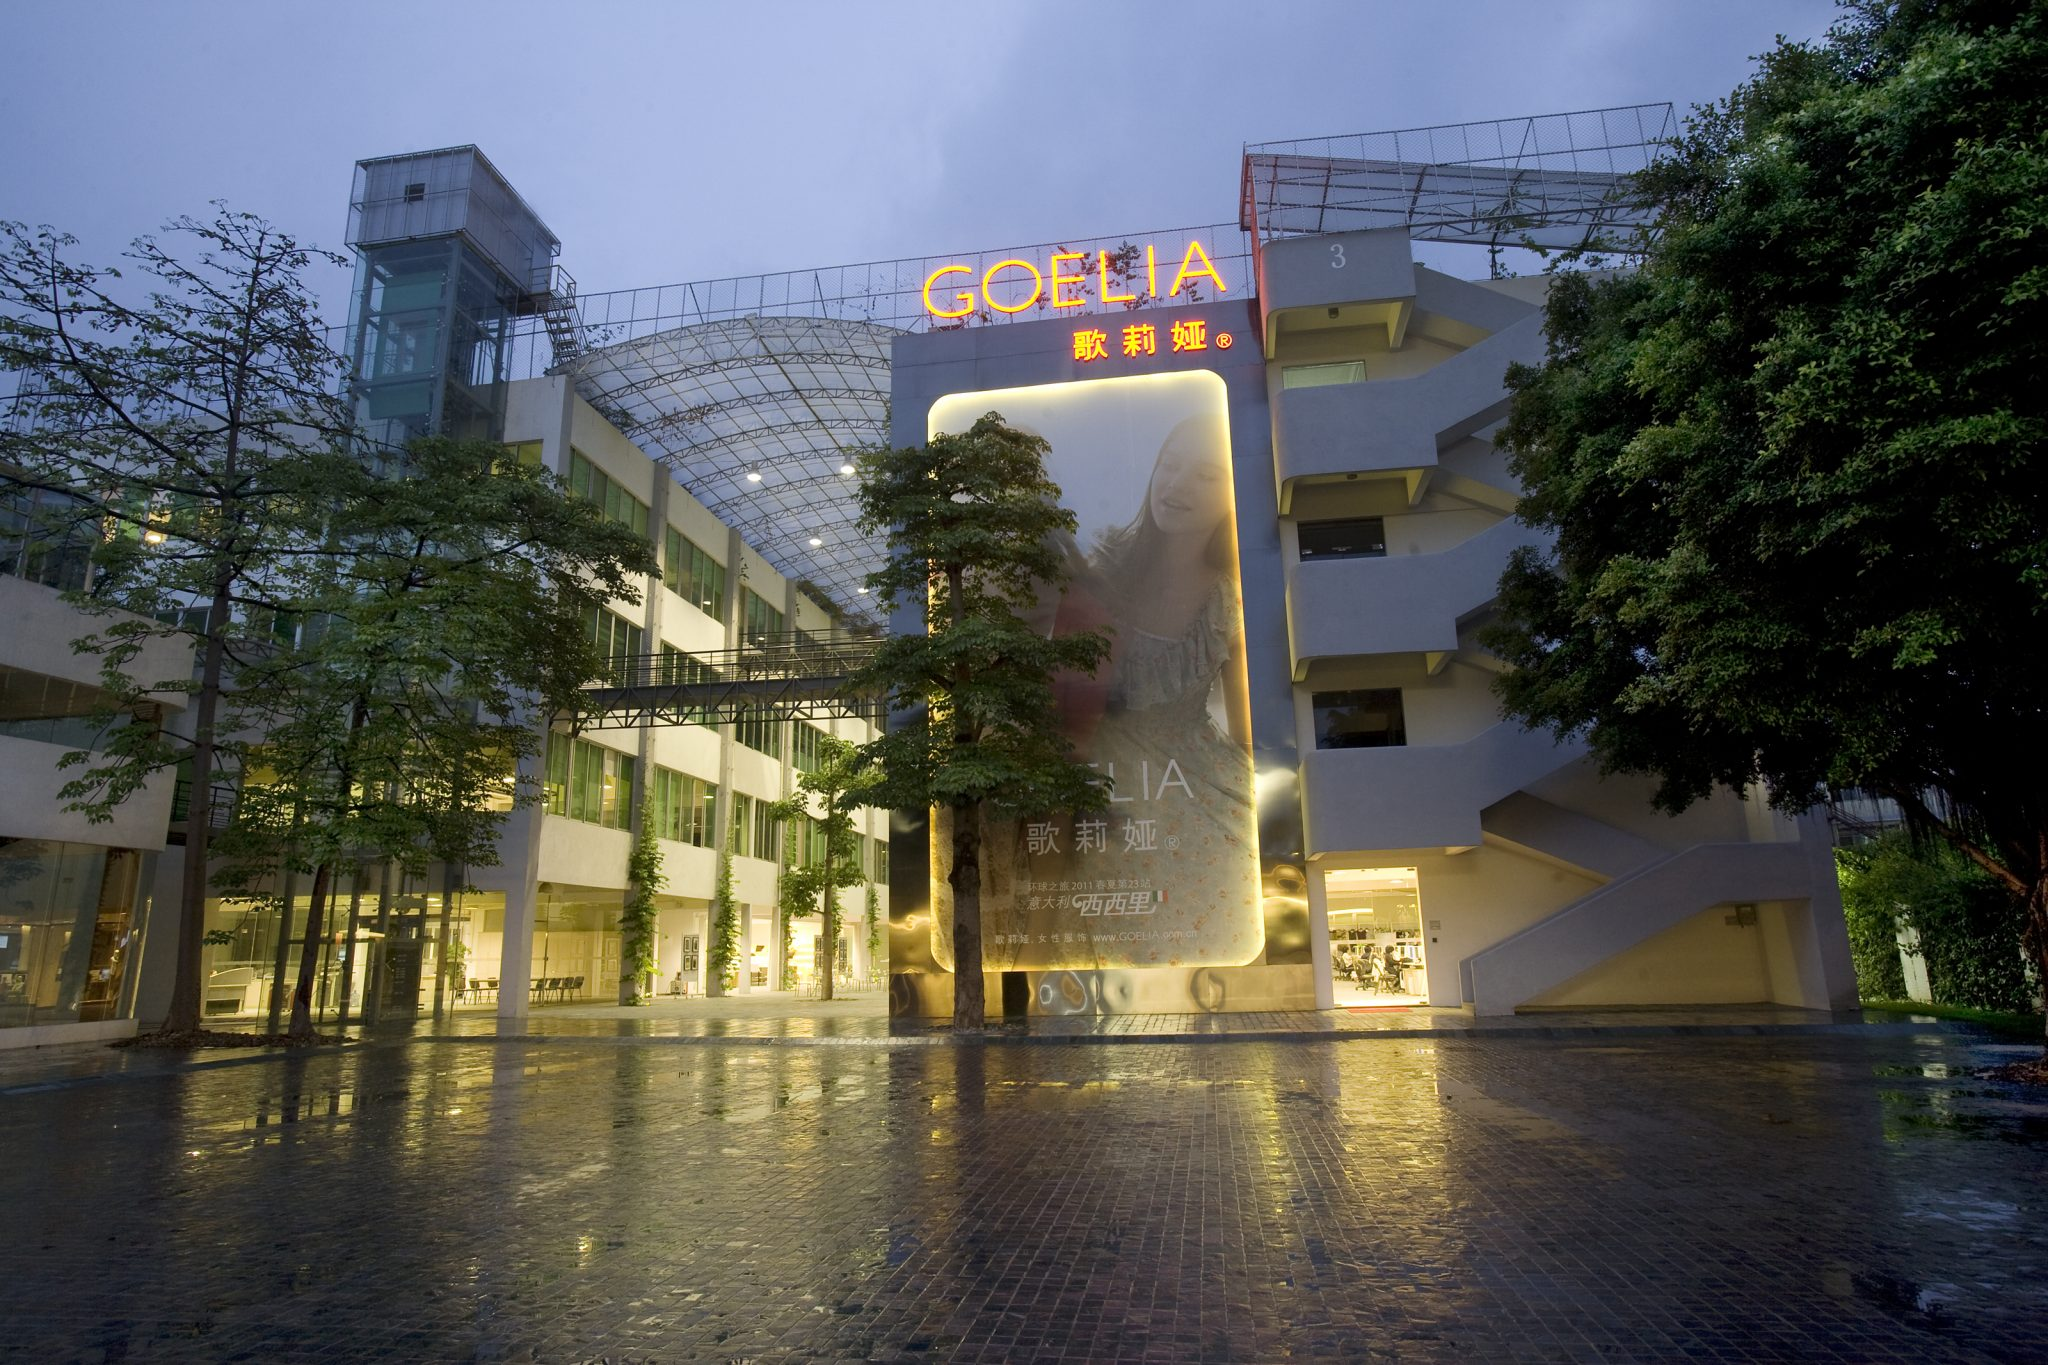 Goelia Headquarters